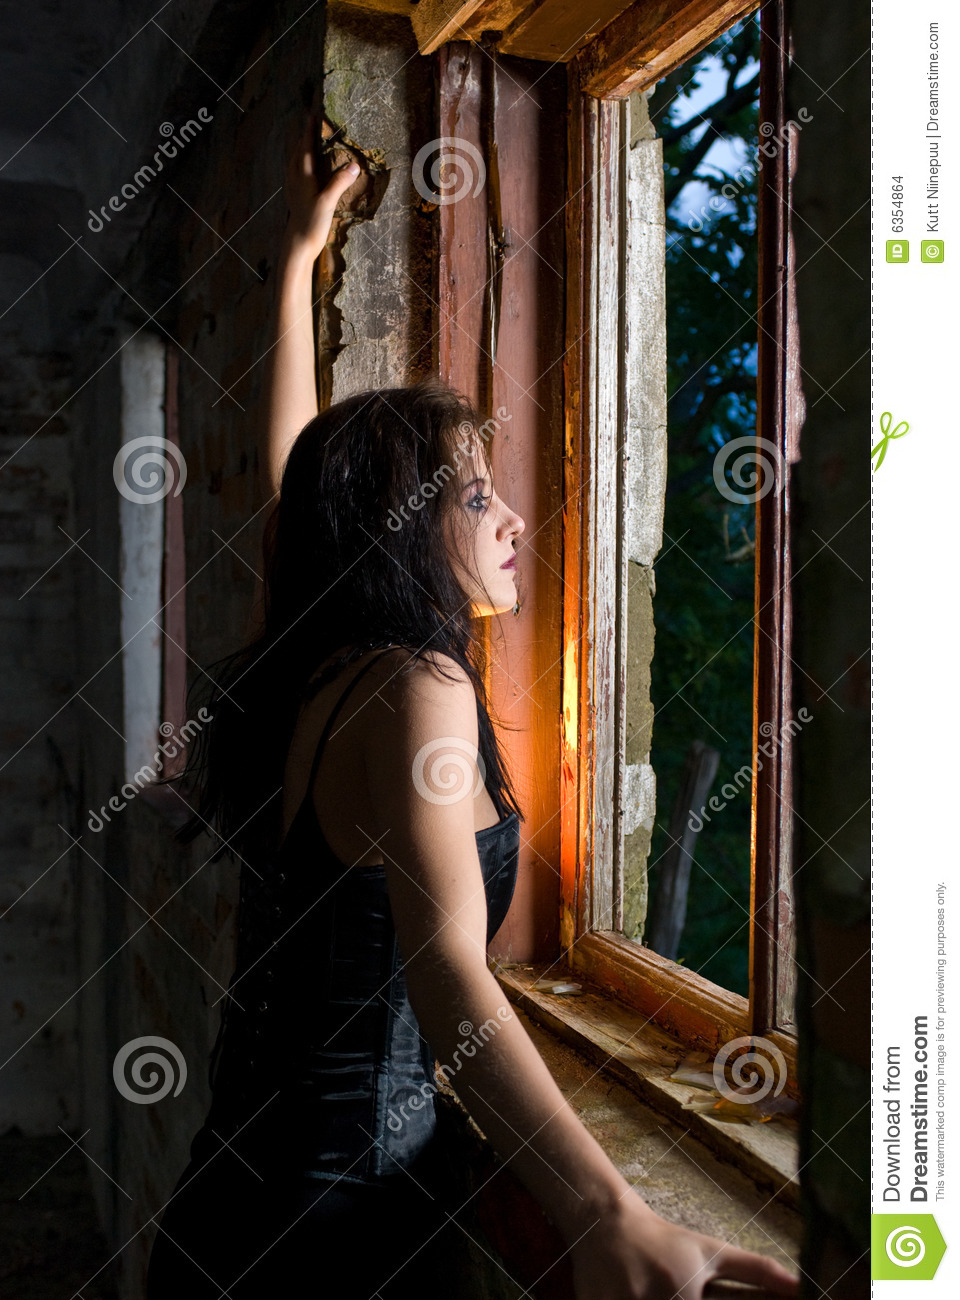 Goth Woman Looking Out Window Stock Photo - Image of ...